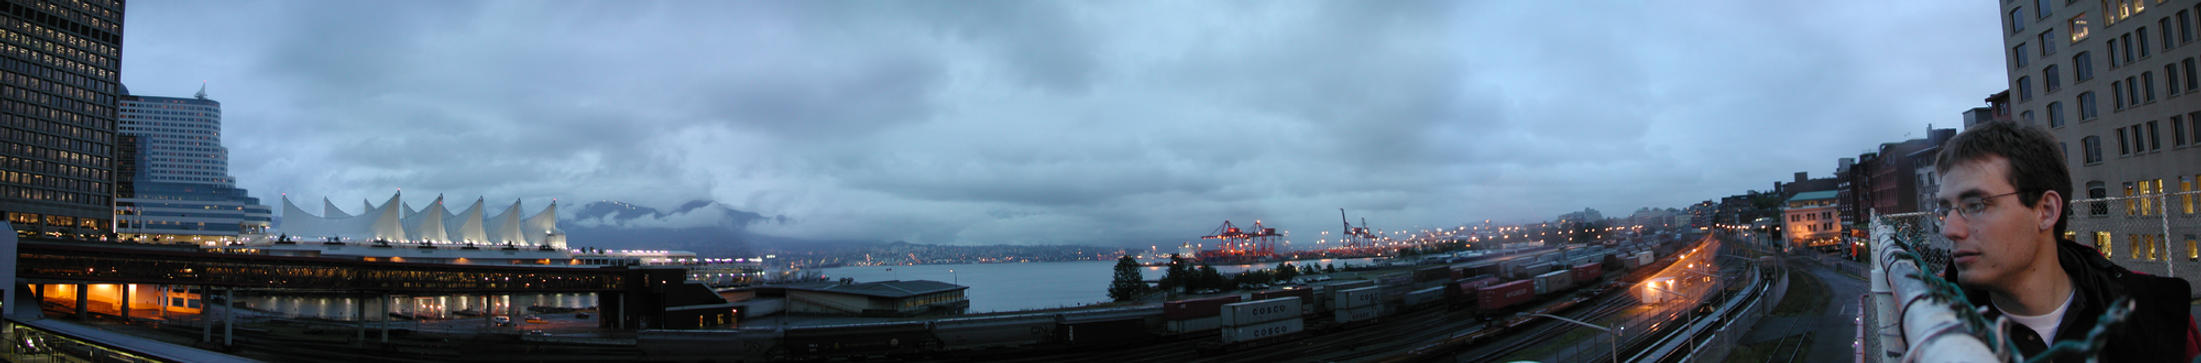 View From Gastown by sambidextrous